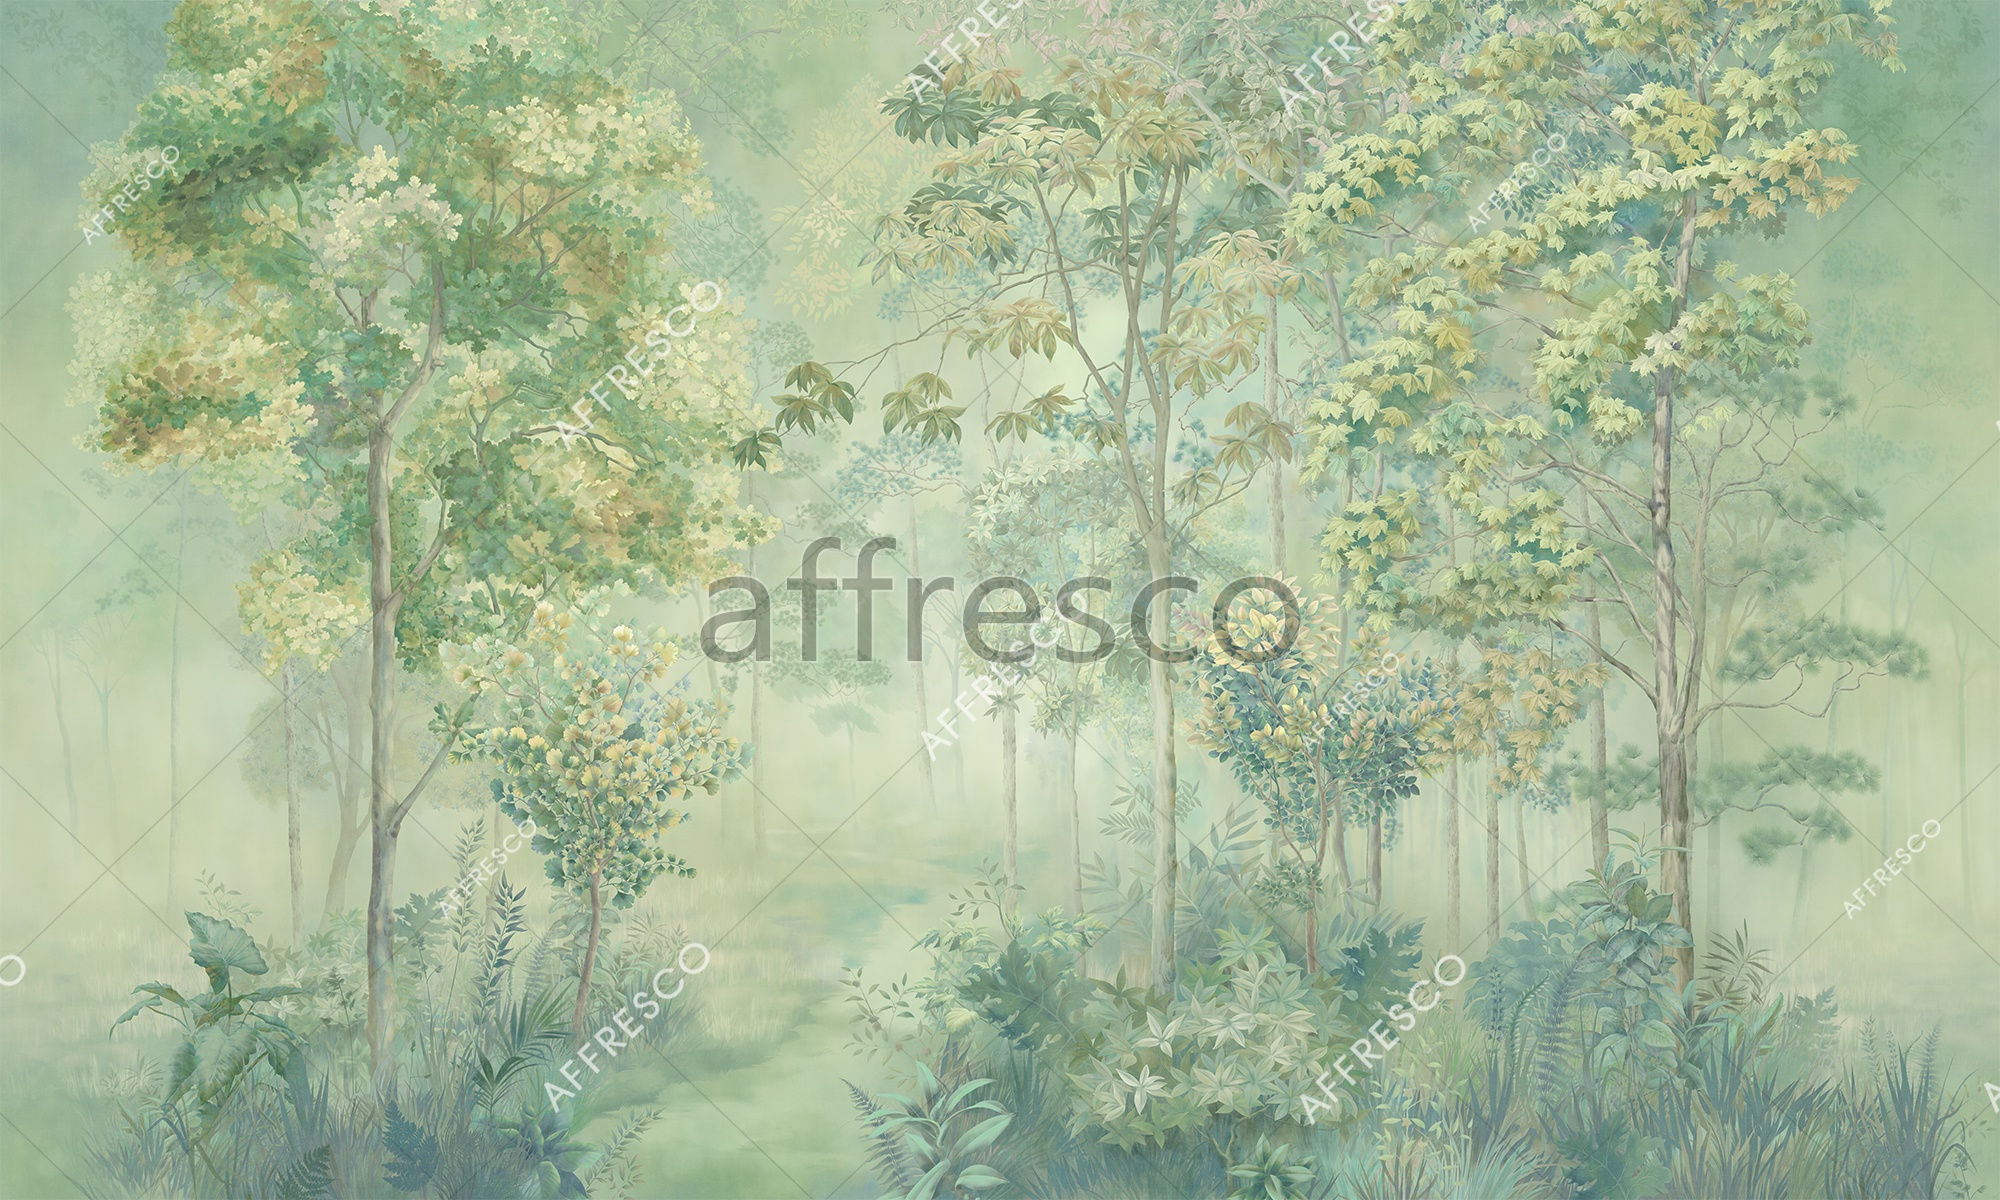 AF527-COL1 | Atmosphere | Affresco Factory